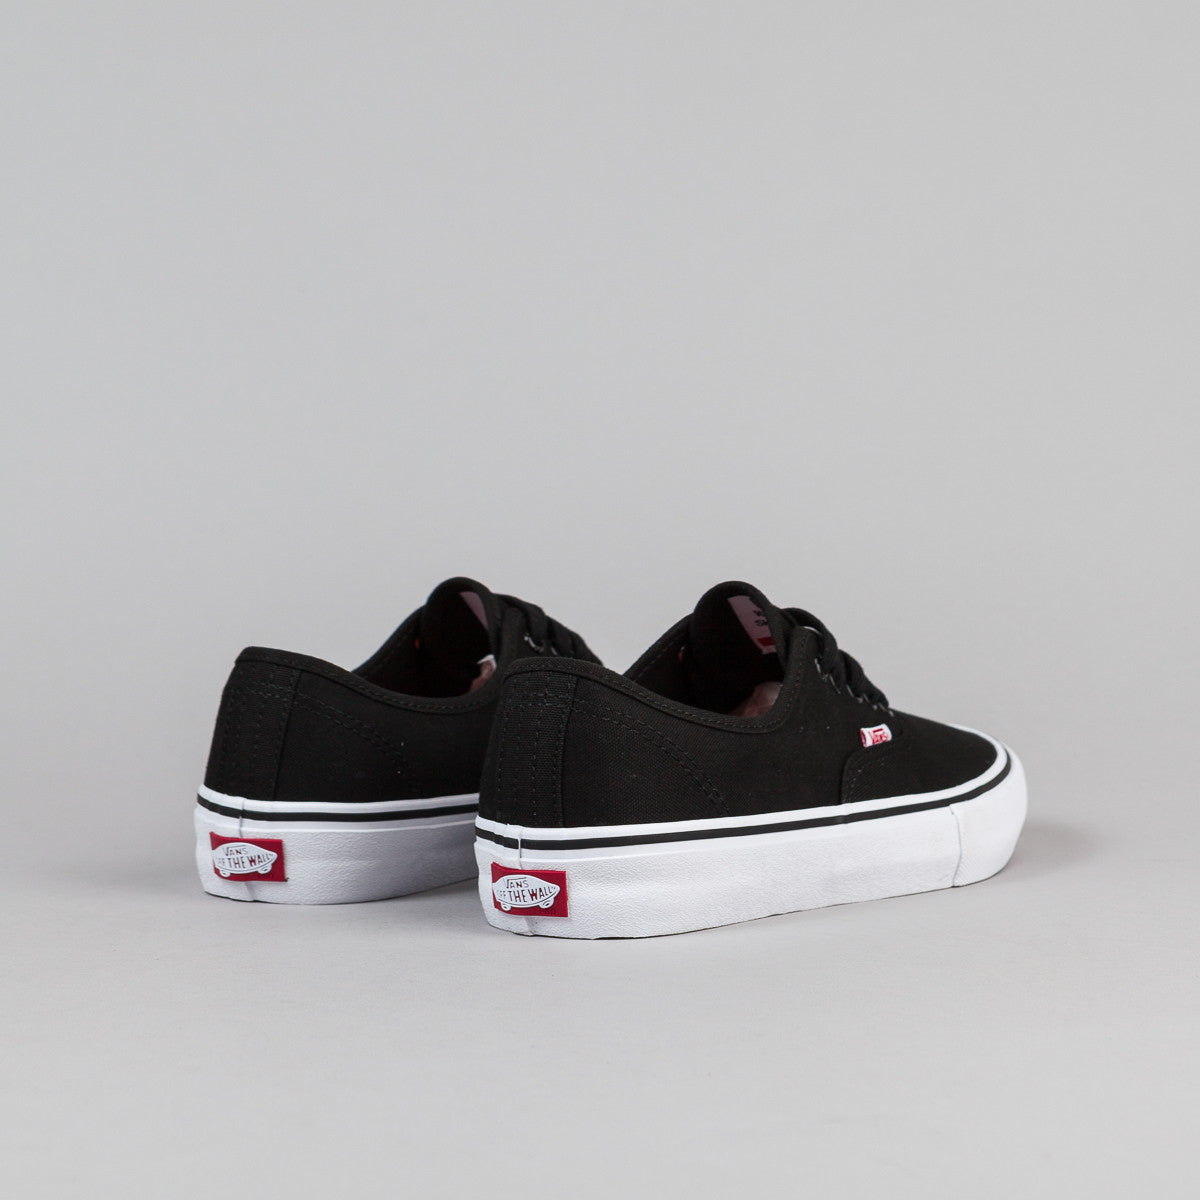 Vans Authentic Pro - Black / White